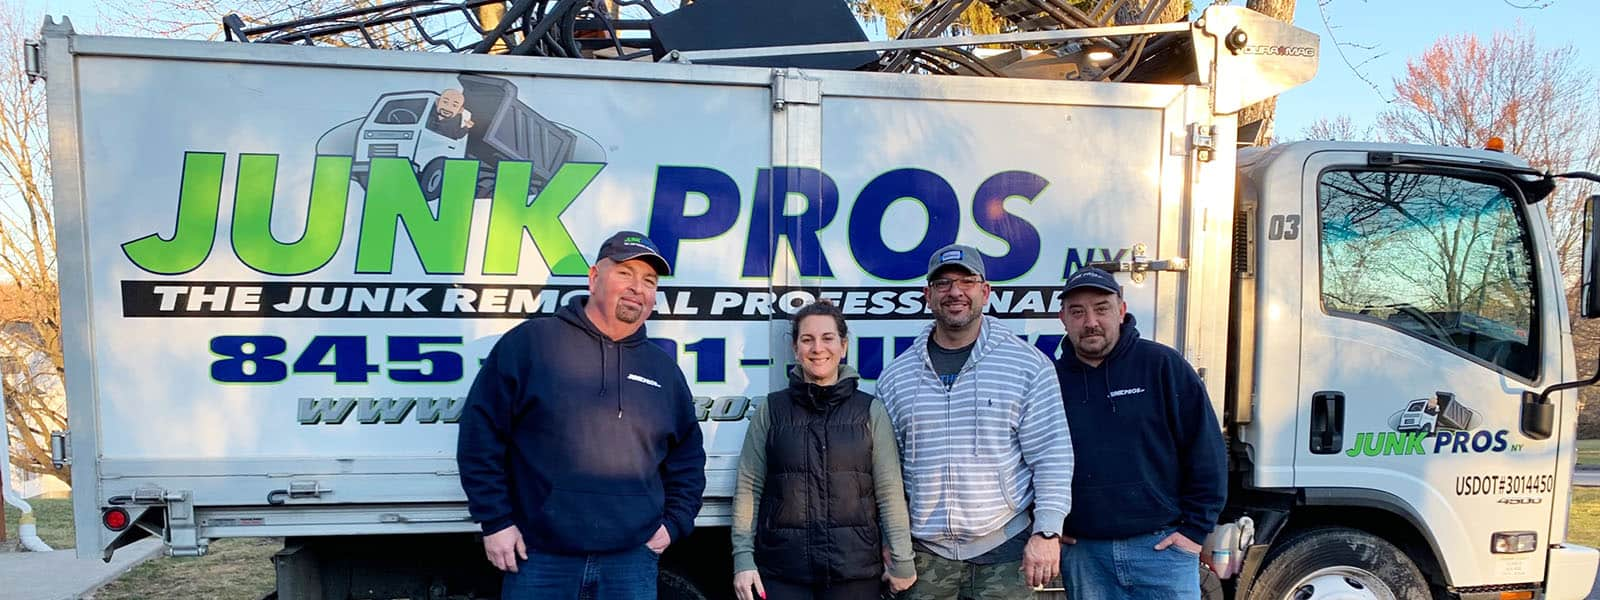 Junk Pros NY team in front of their truck